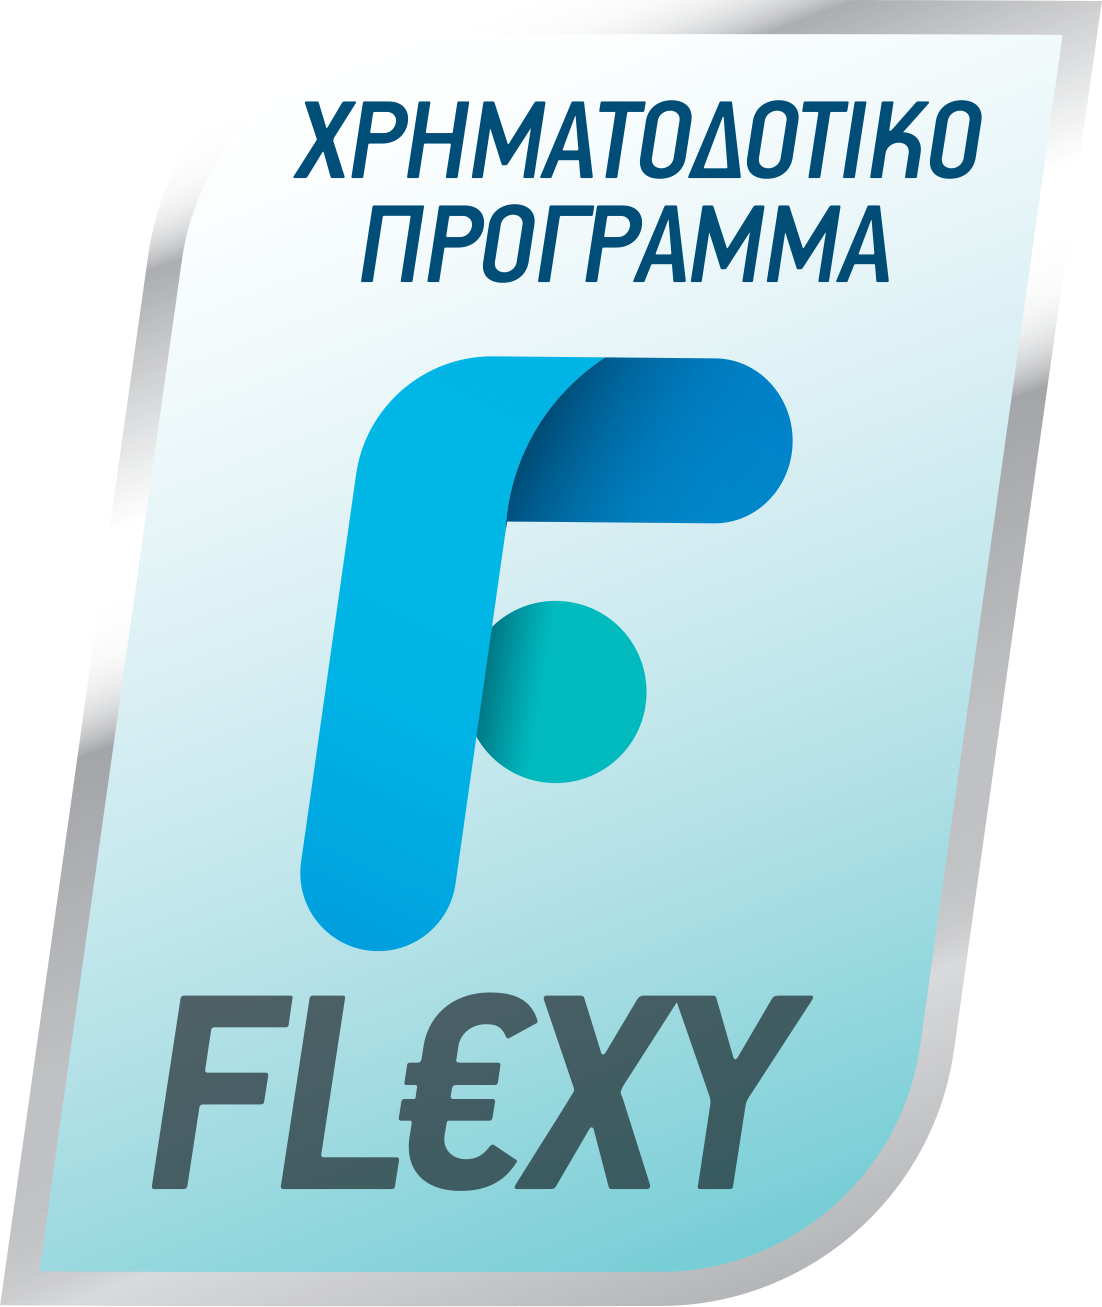 flexy logo